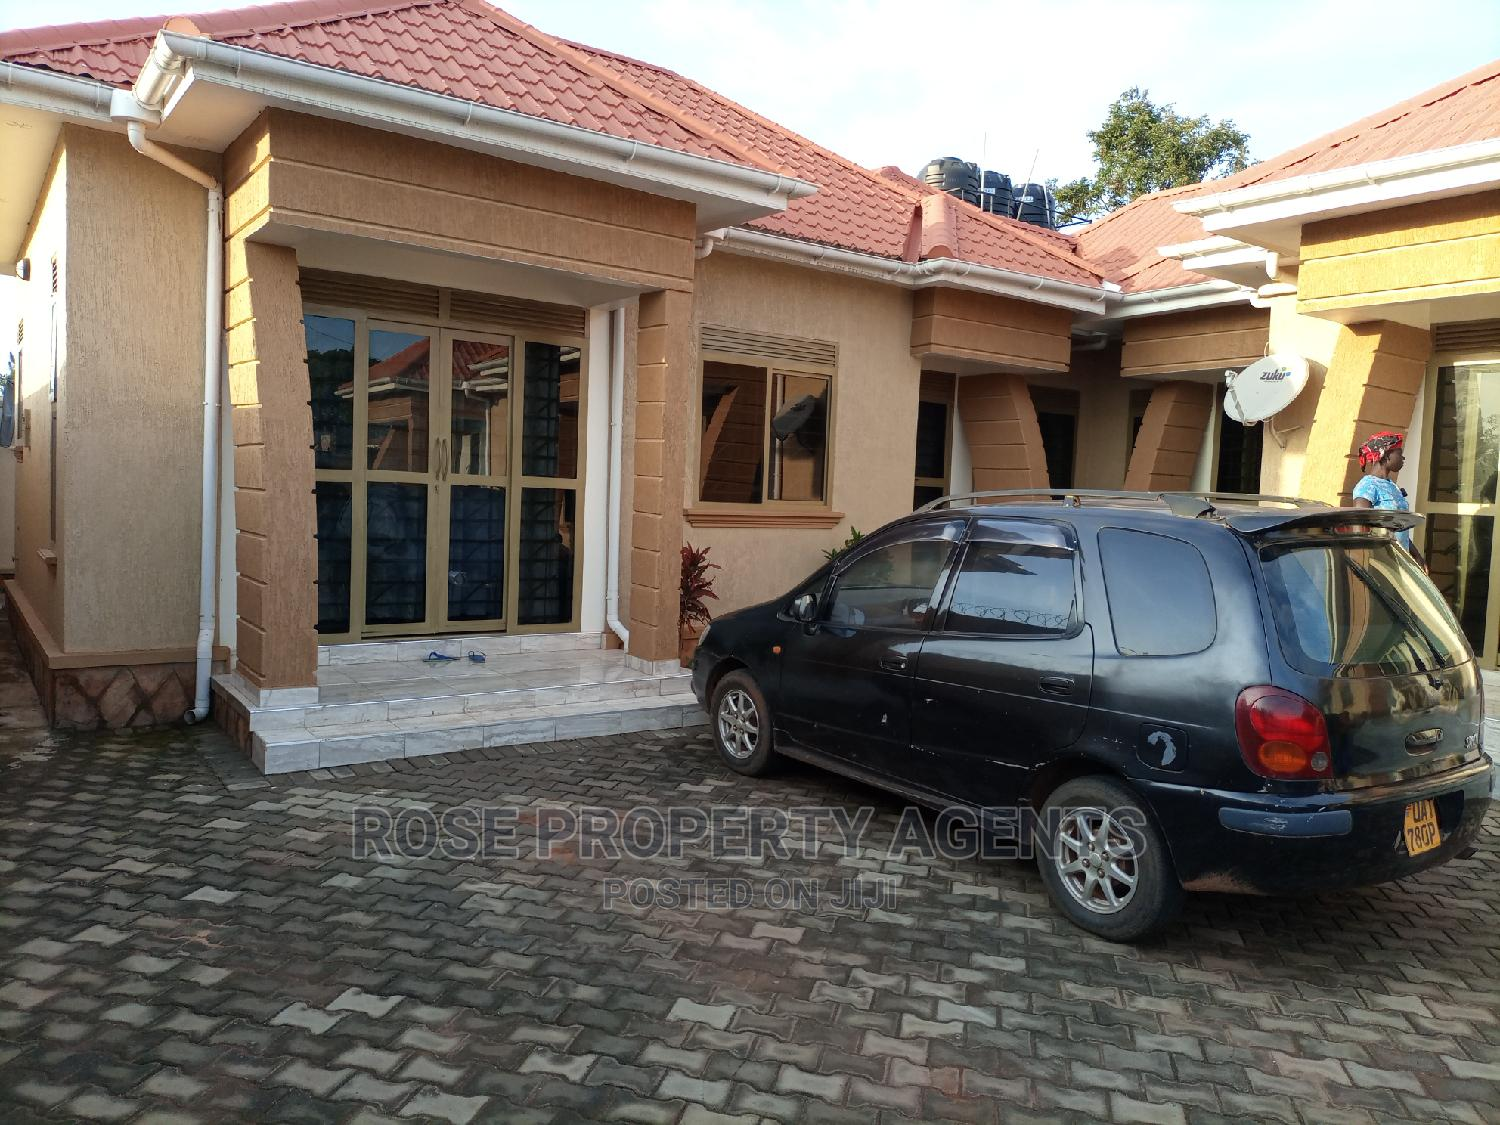 1bdrm House in Kira, Kampala for Rent | Houses & Apartments For Rent for sale in Kampala, Central Region, Uganda